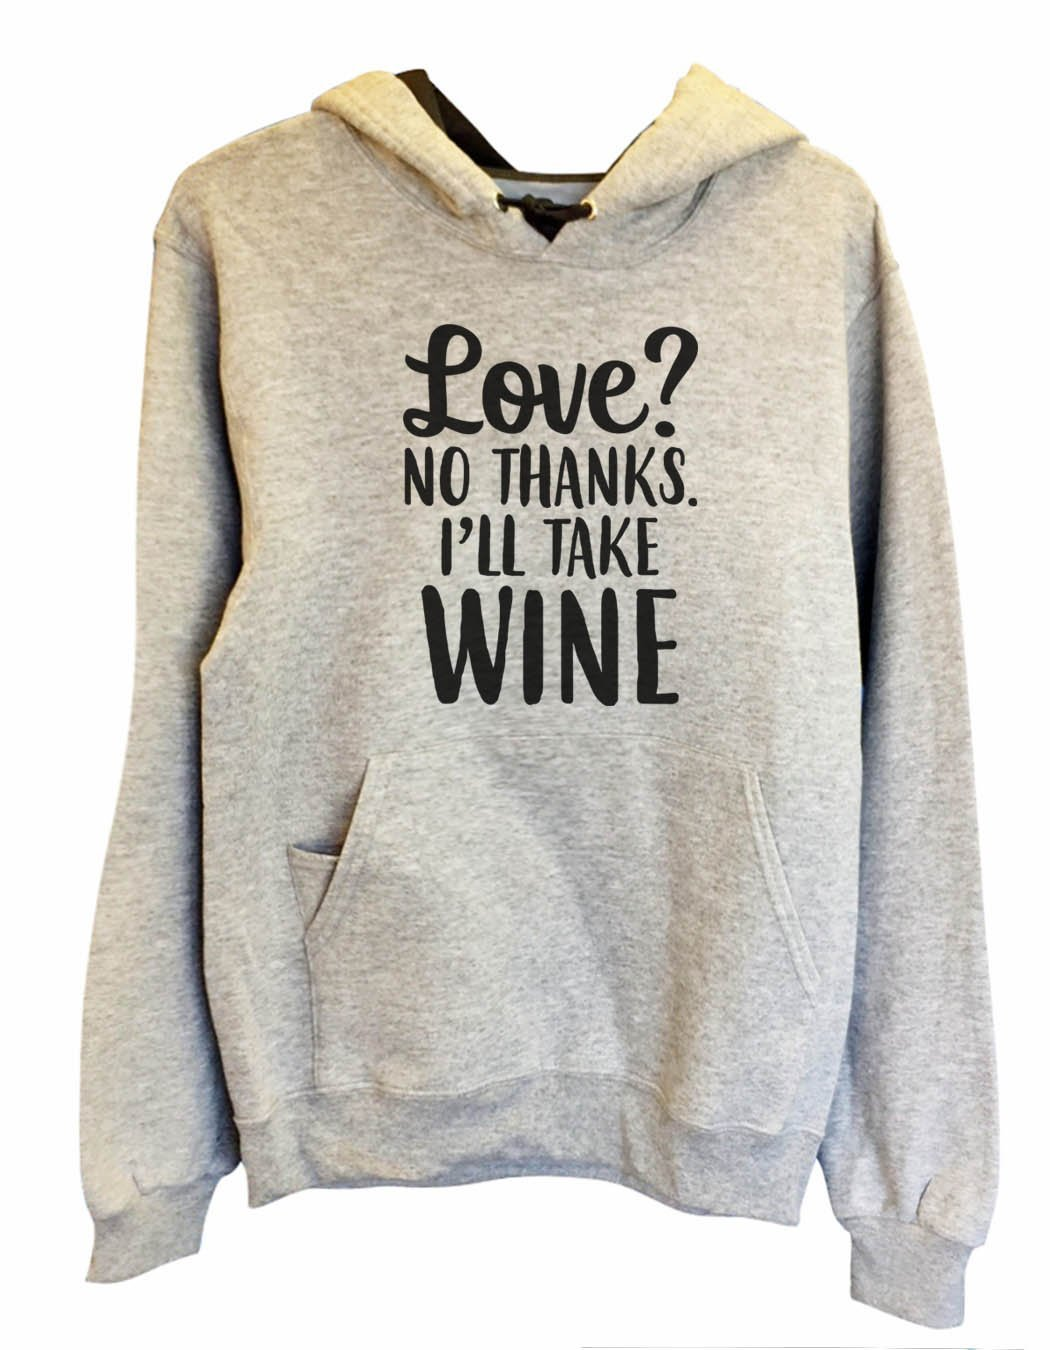 UNISEX HOODIE - Love? No Thanks. I'Ll Take Wine - FUNNY MENS AND WOMENS HOODED SWEATSHIRTS - 2159 Funny Shirt Small / Heather Grey